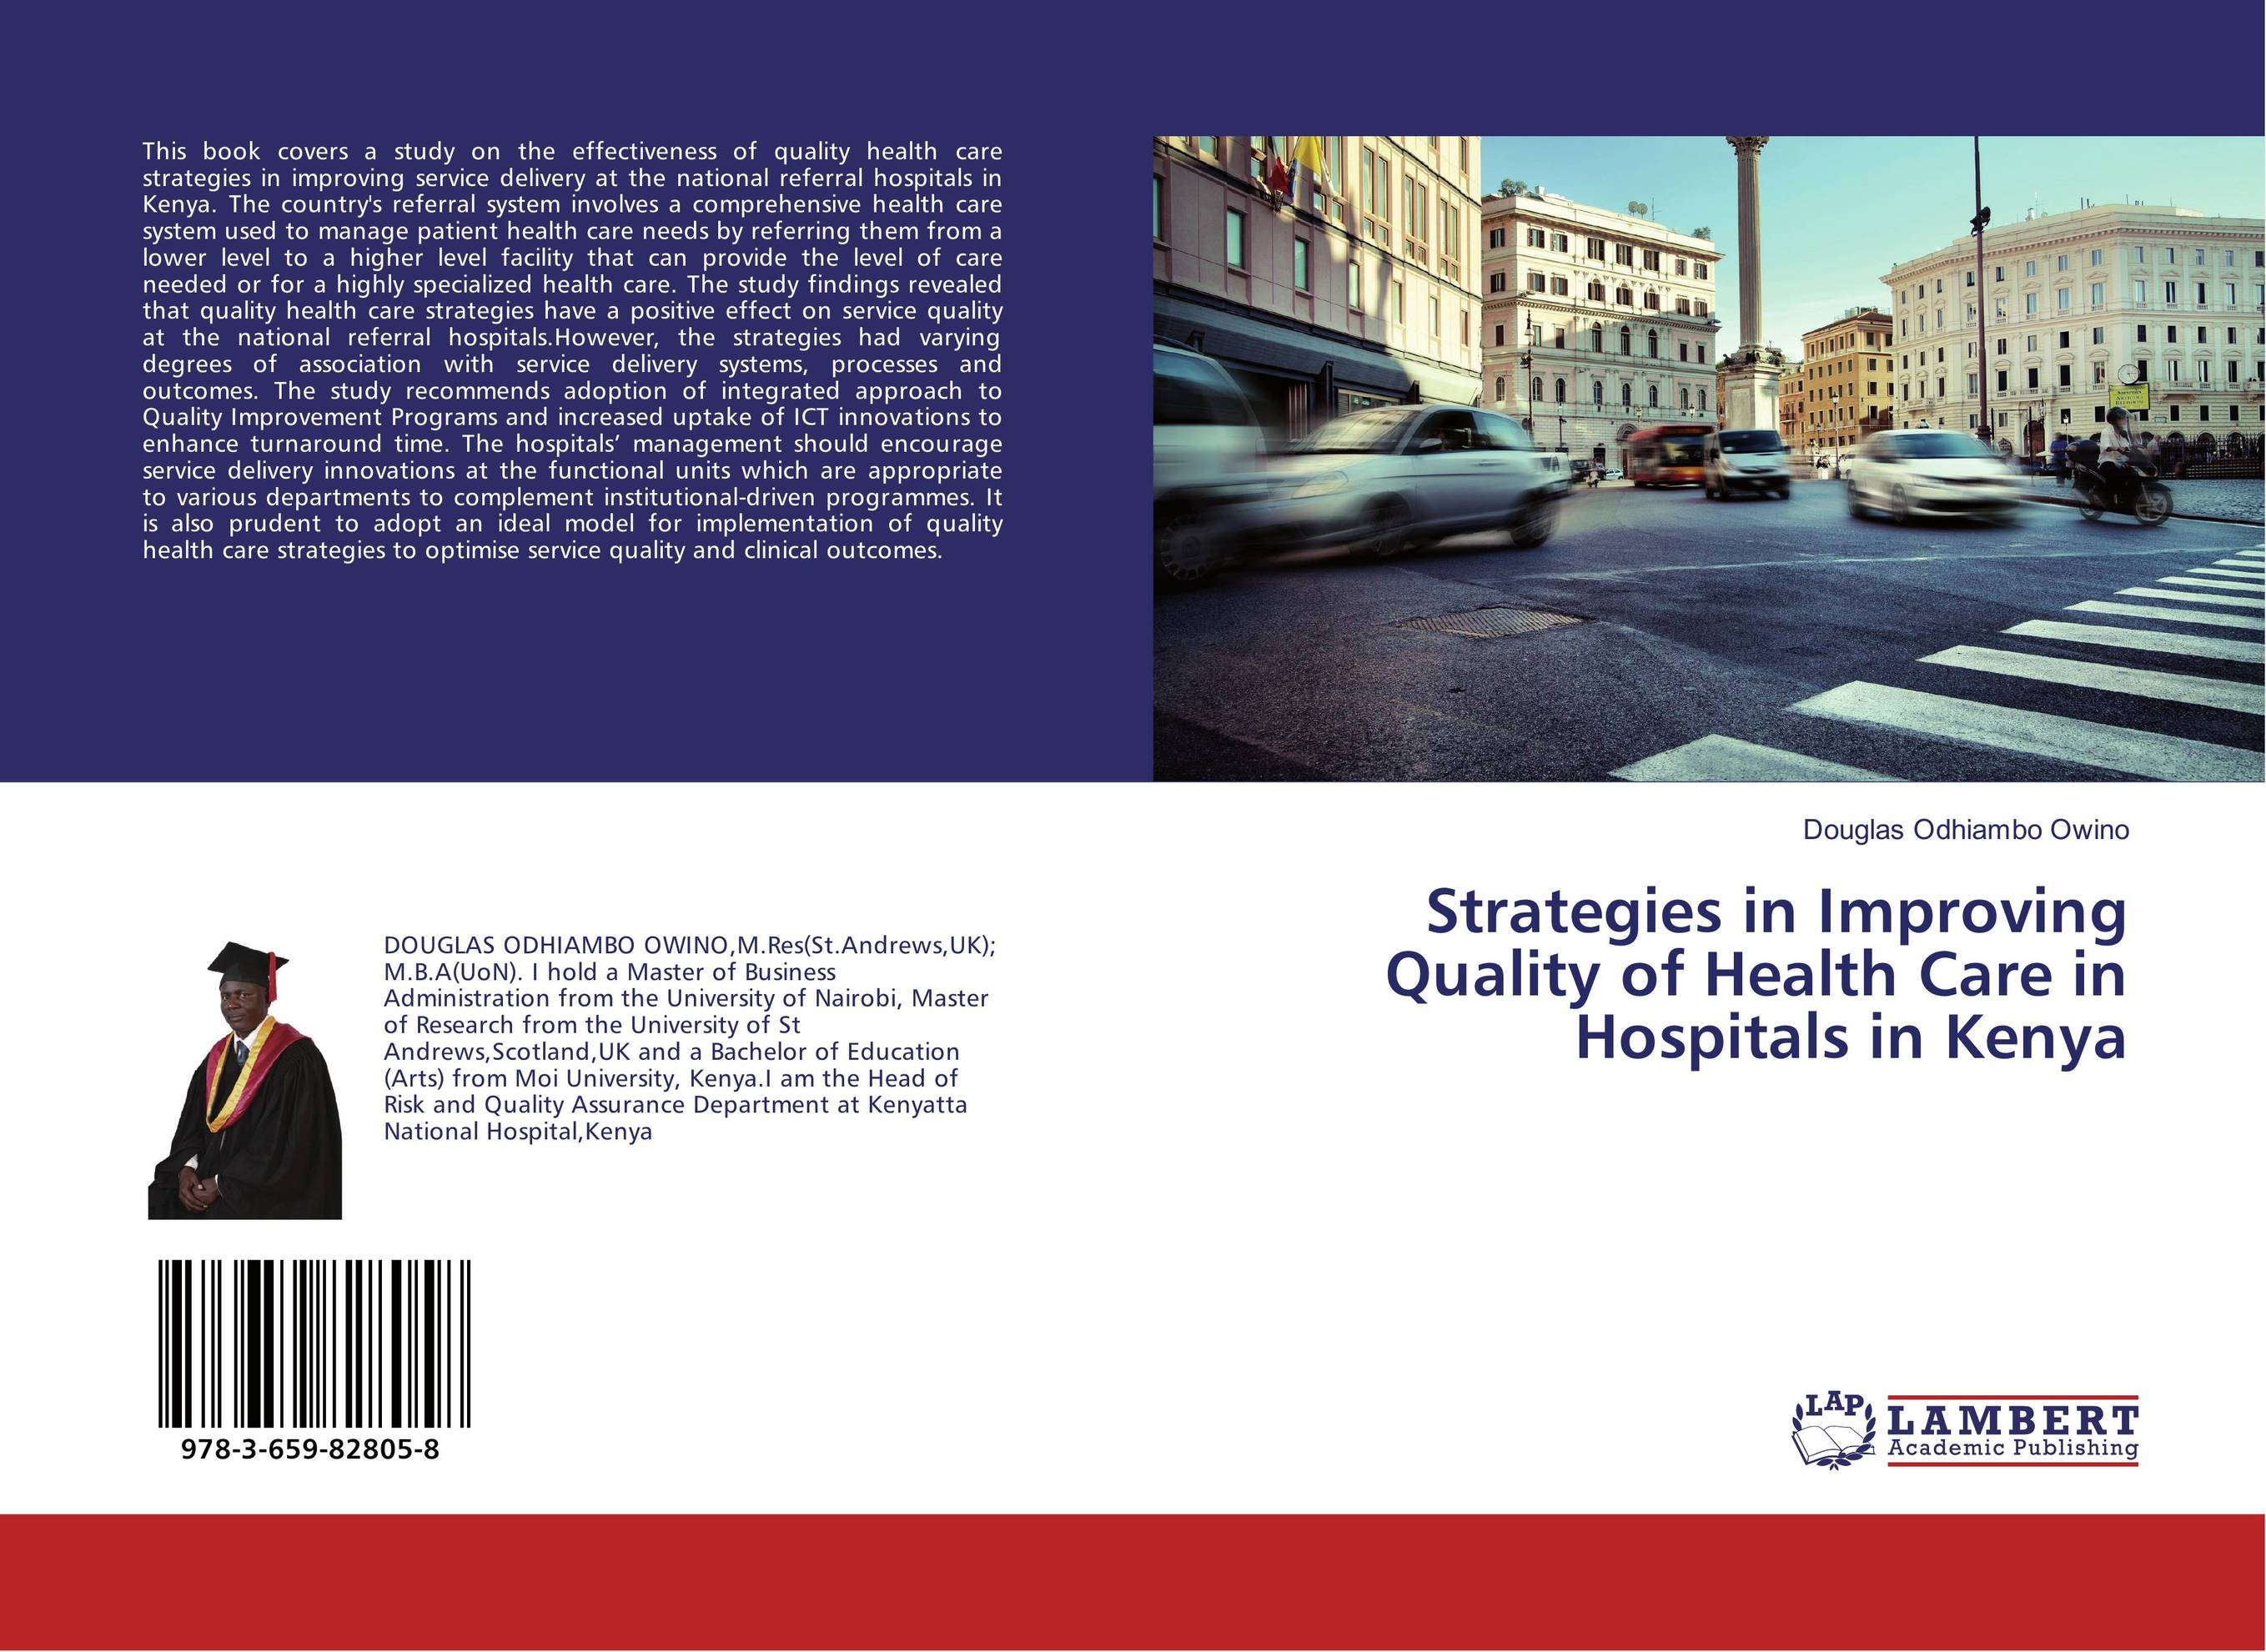 Strategies in Improving Quality of Health Care in Hospitals in Kenya driven to distraction